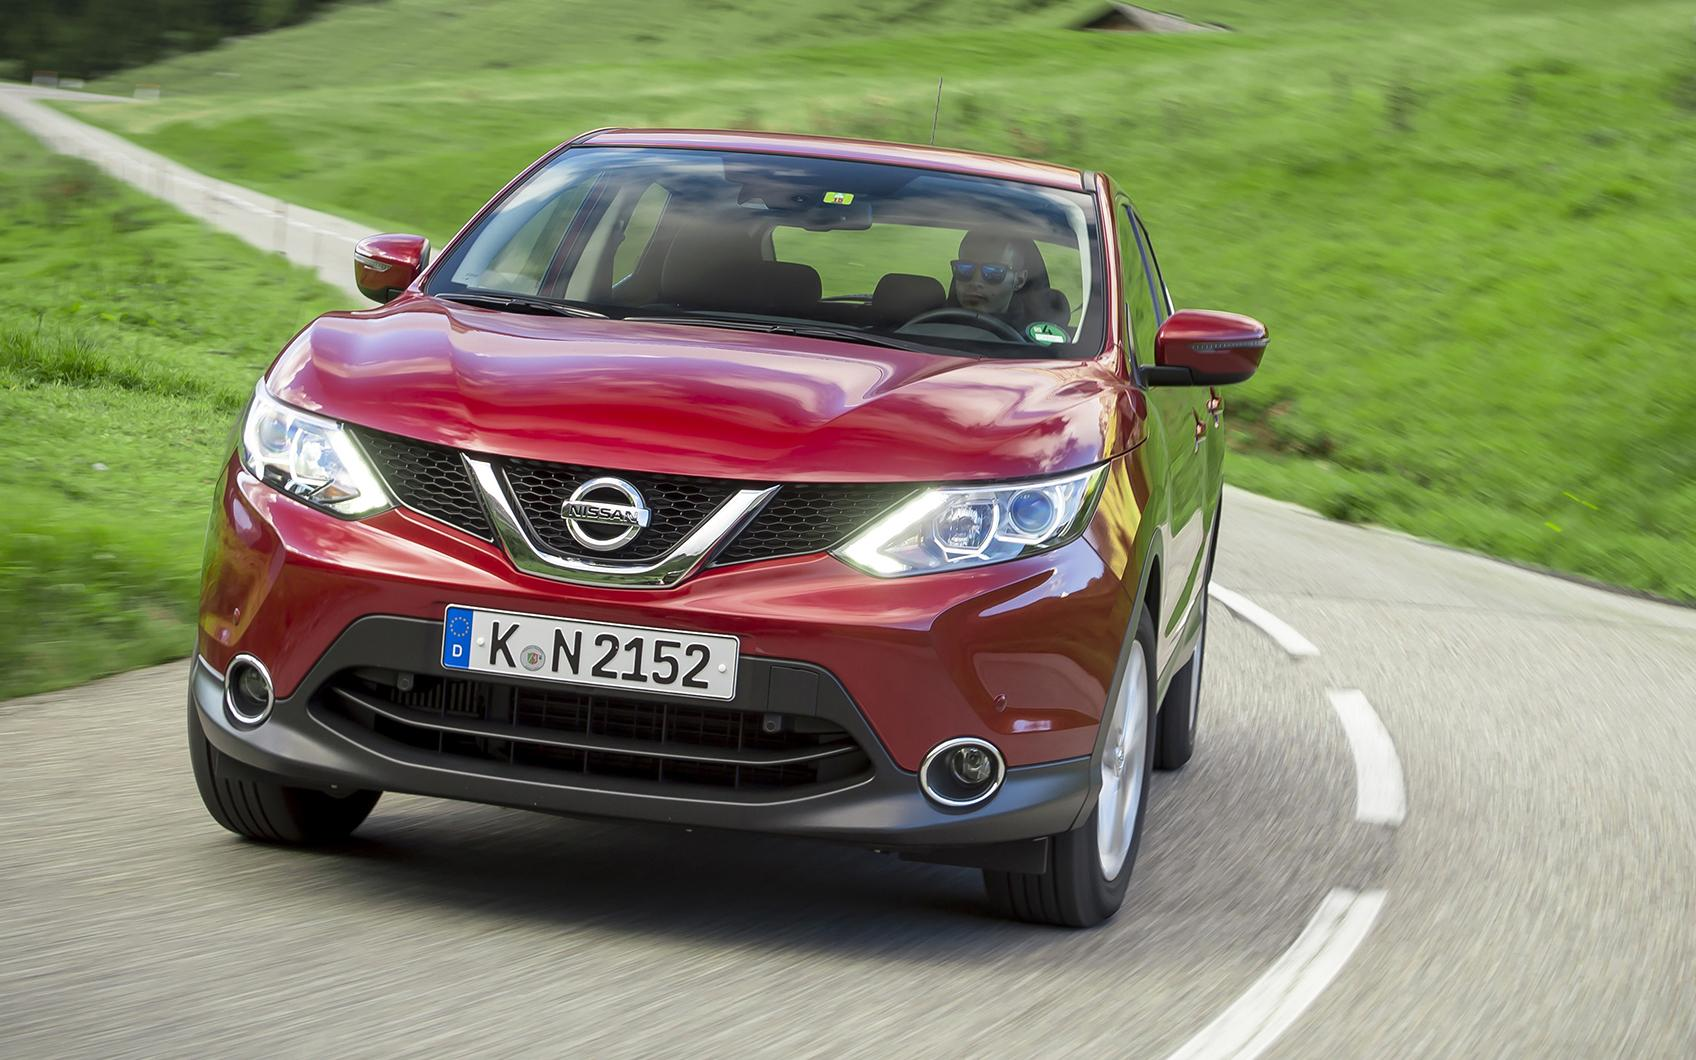 nissan qashqai dig t 163 testdrive topgear nederland. Black Bedroom Furniture Sets. Home Design Ideas